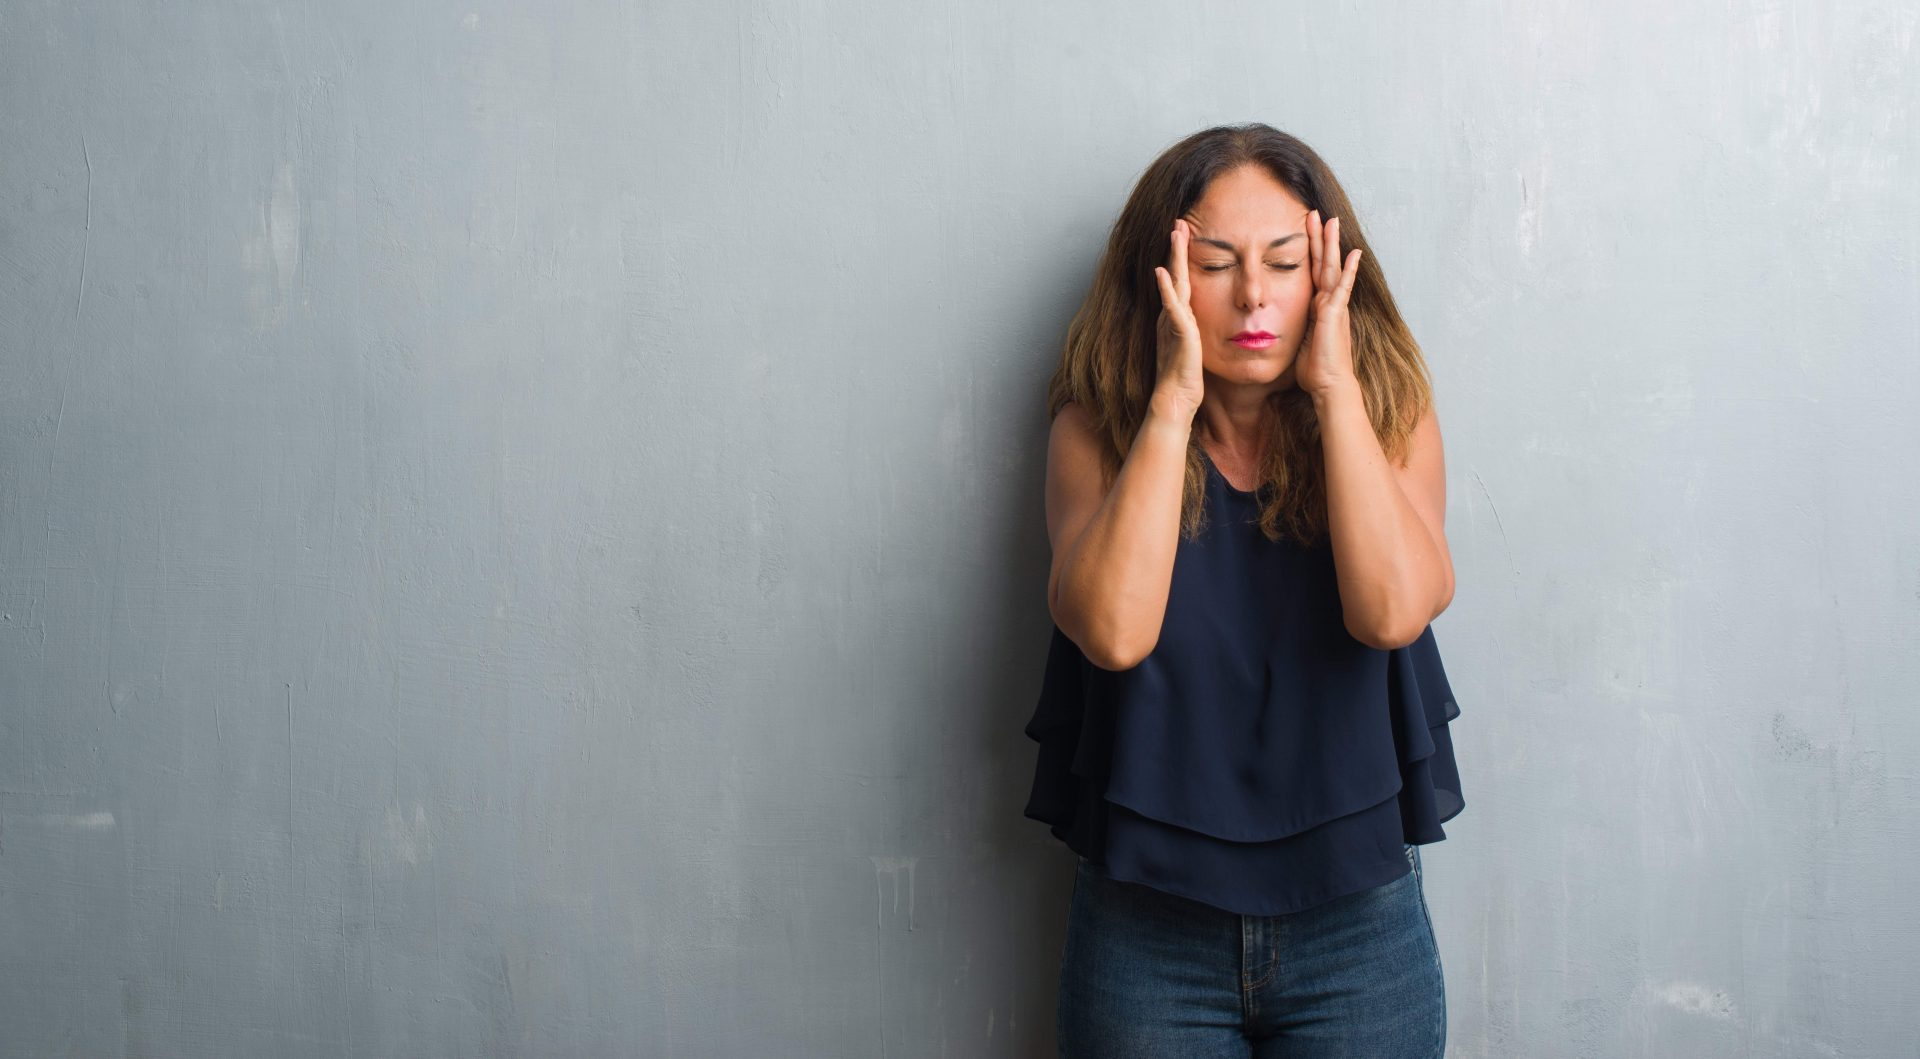 5 Quick Tips to Stop Worrying | The Grace and Moxie Life